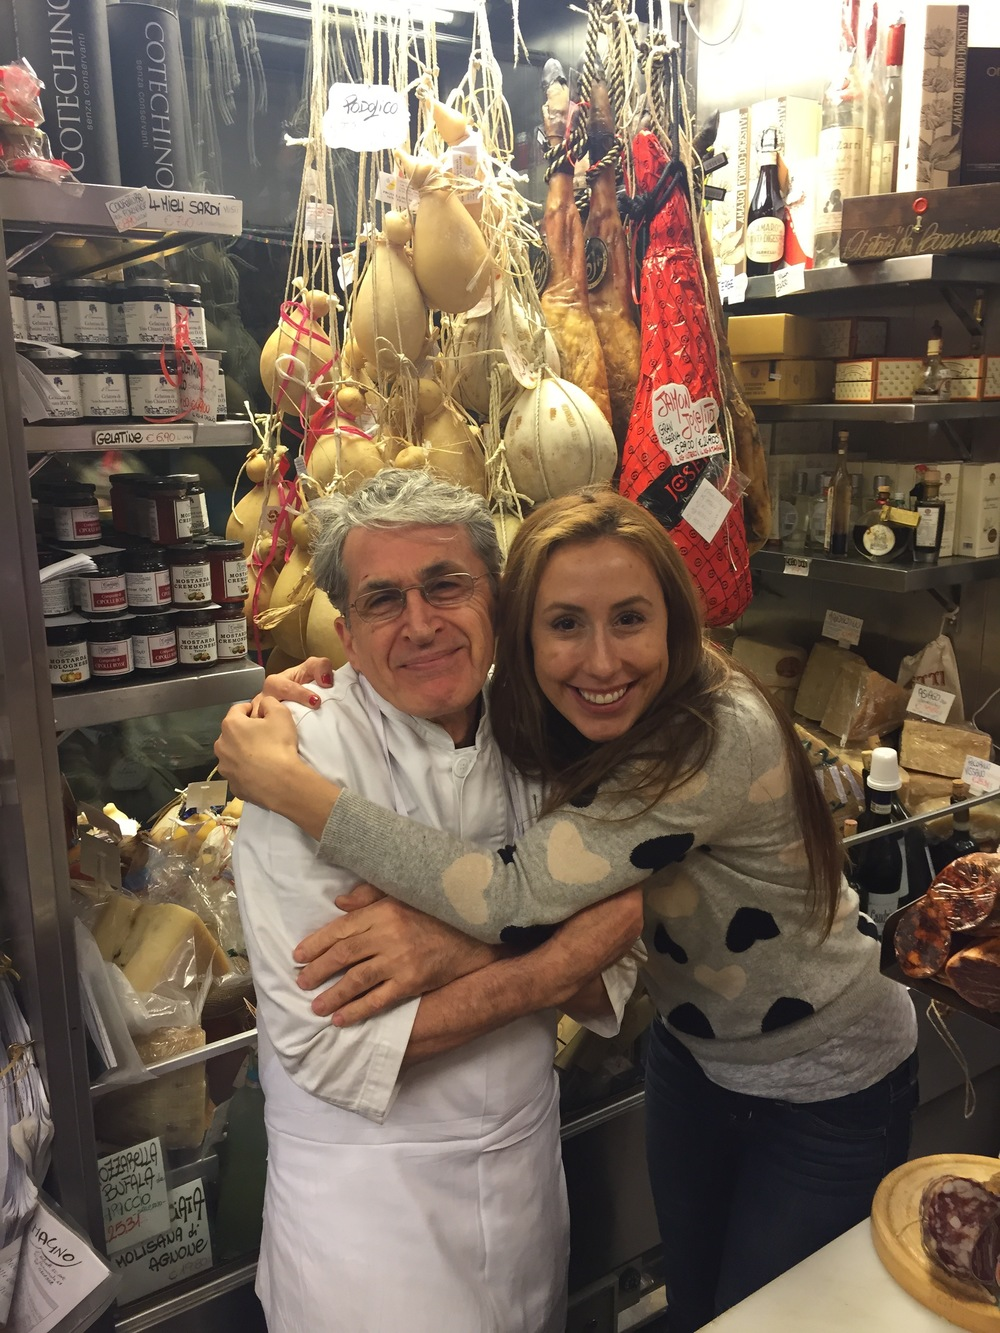 Claudio Volpetti always rolls out the red carpet for me when I come to Rome & visit his shop. My Italian isn't great and neither is his English, but we bond over food tastings and hugs.